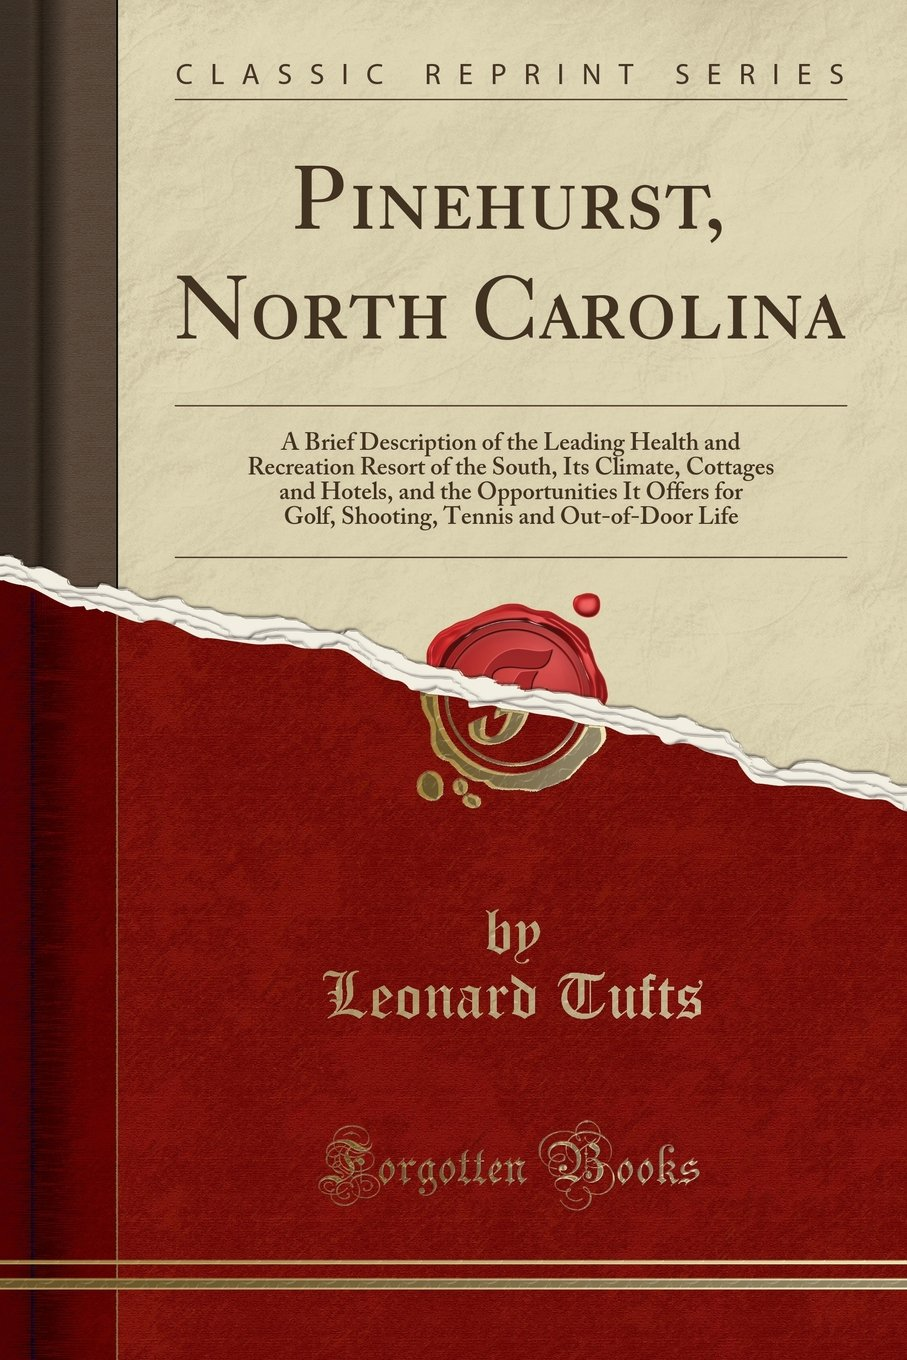 Download Pinehurst, North Carolina: A Brief Description of the Leading Health and Recreation Resort of the South, Its Climate, Cottages and Hotels, and the ... Tennis and Out-of-Door Life (Classic Reprint) PDF